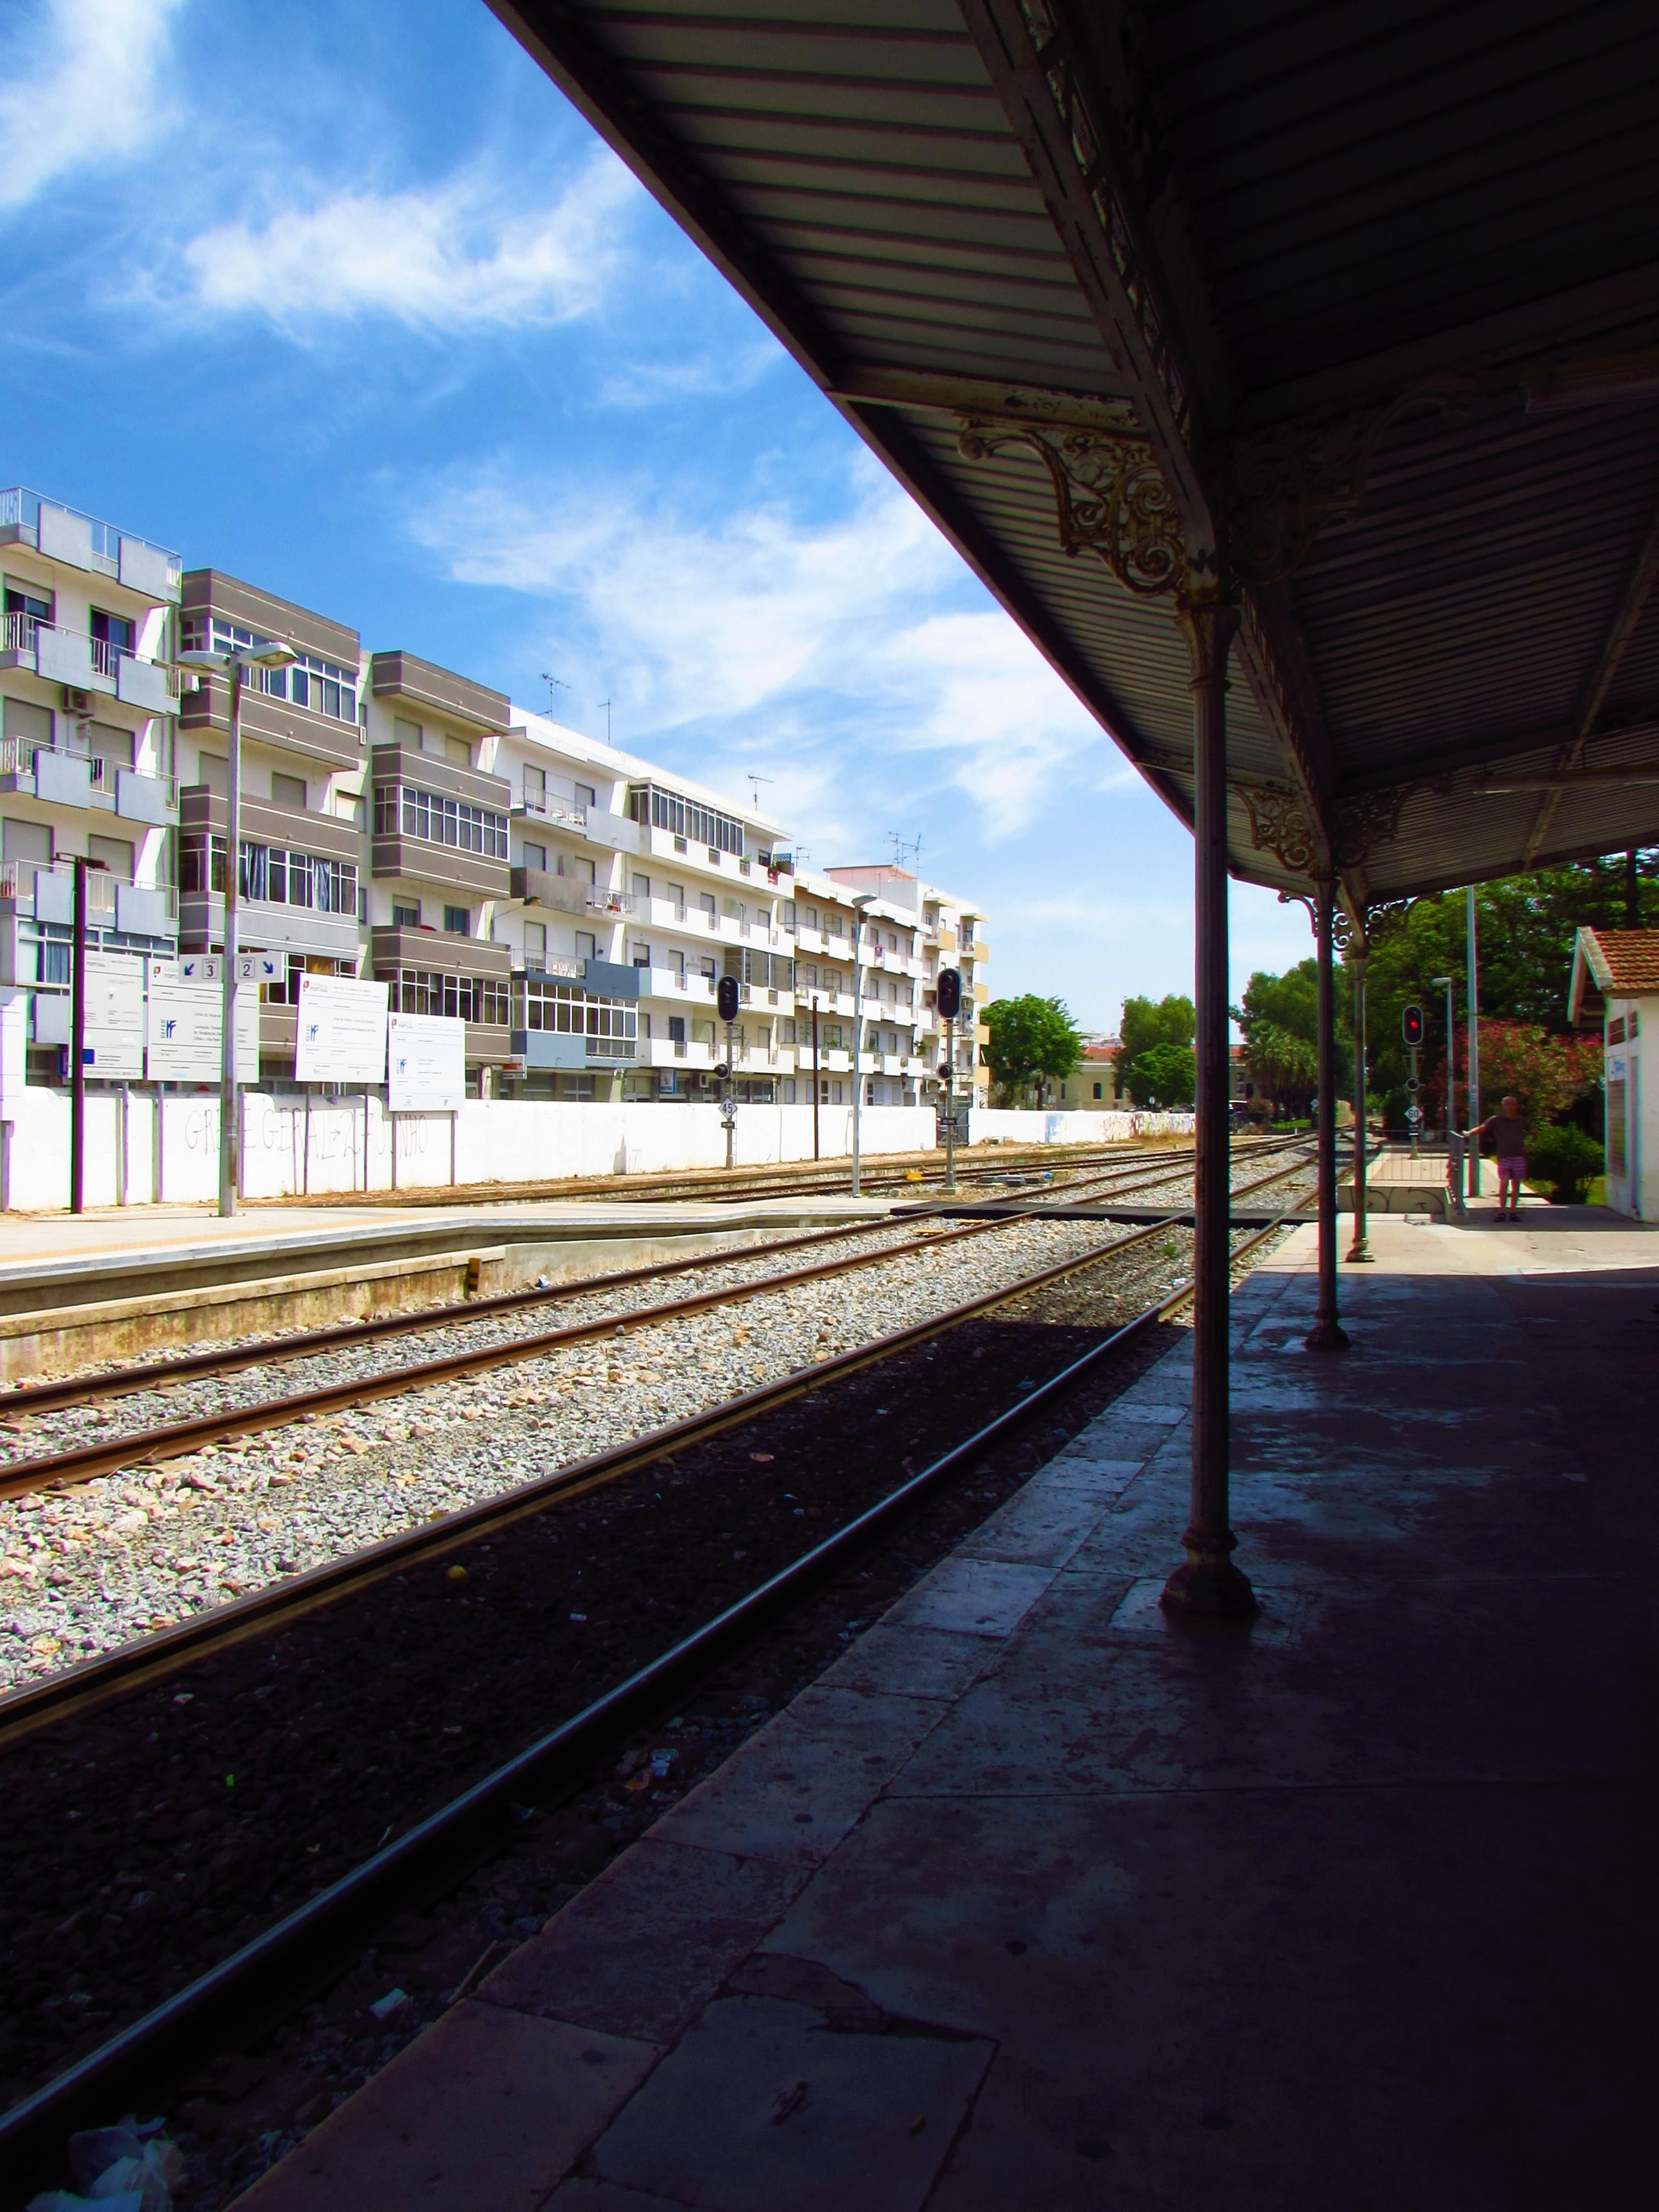 Mar en Estación de Tren